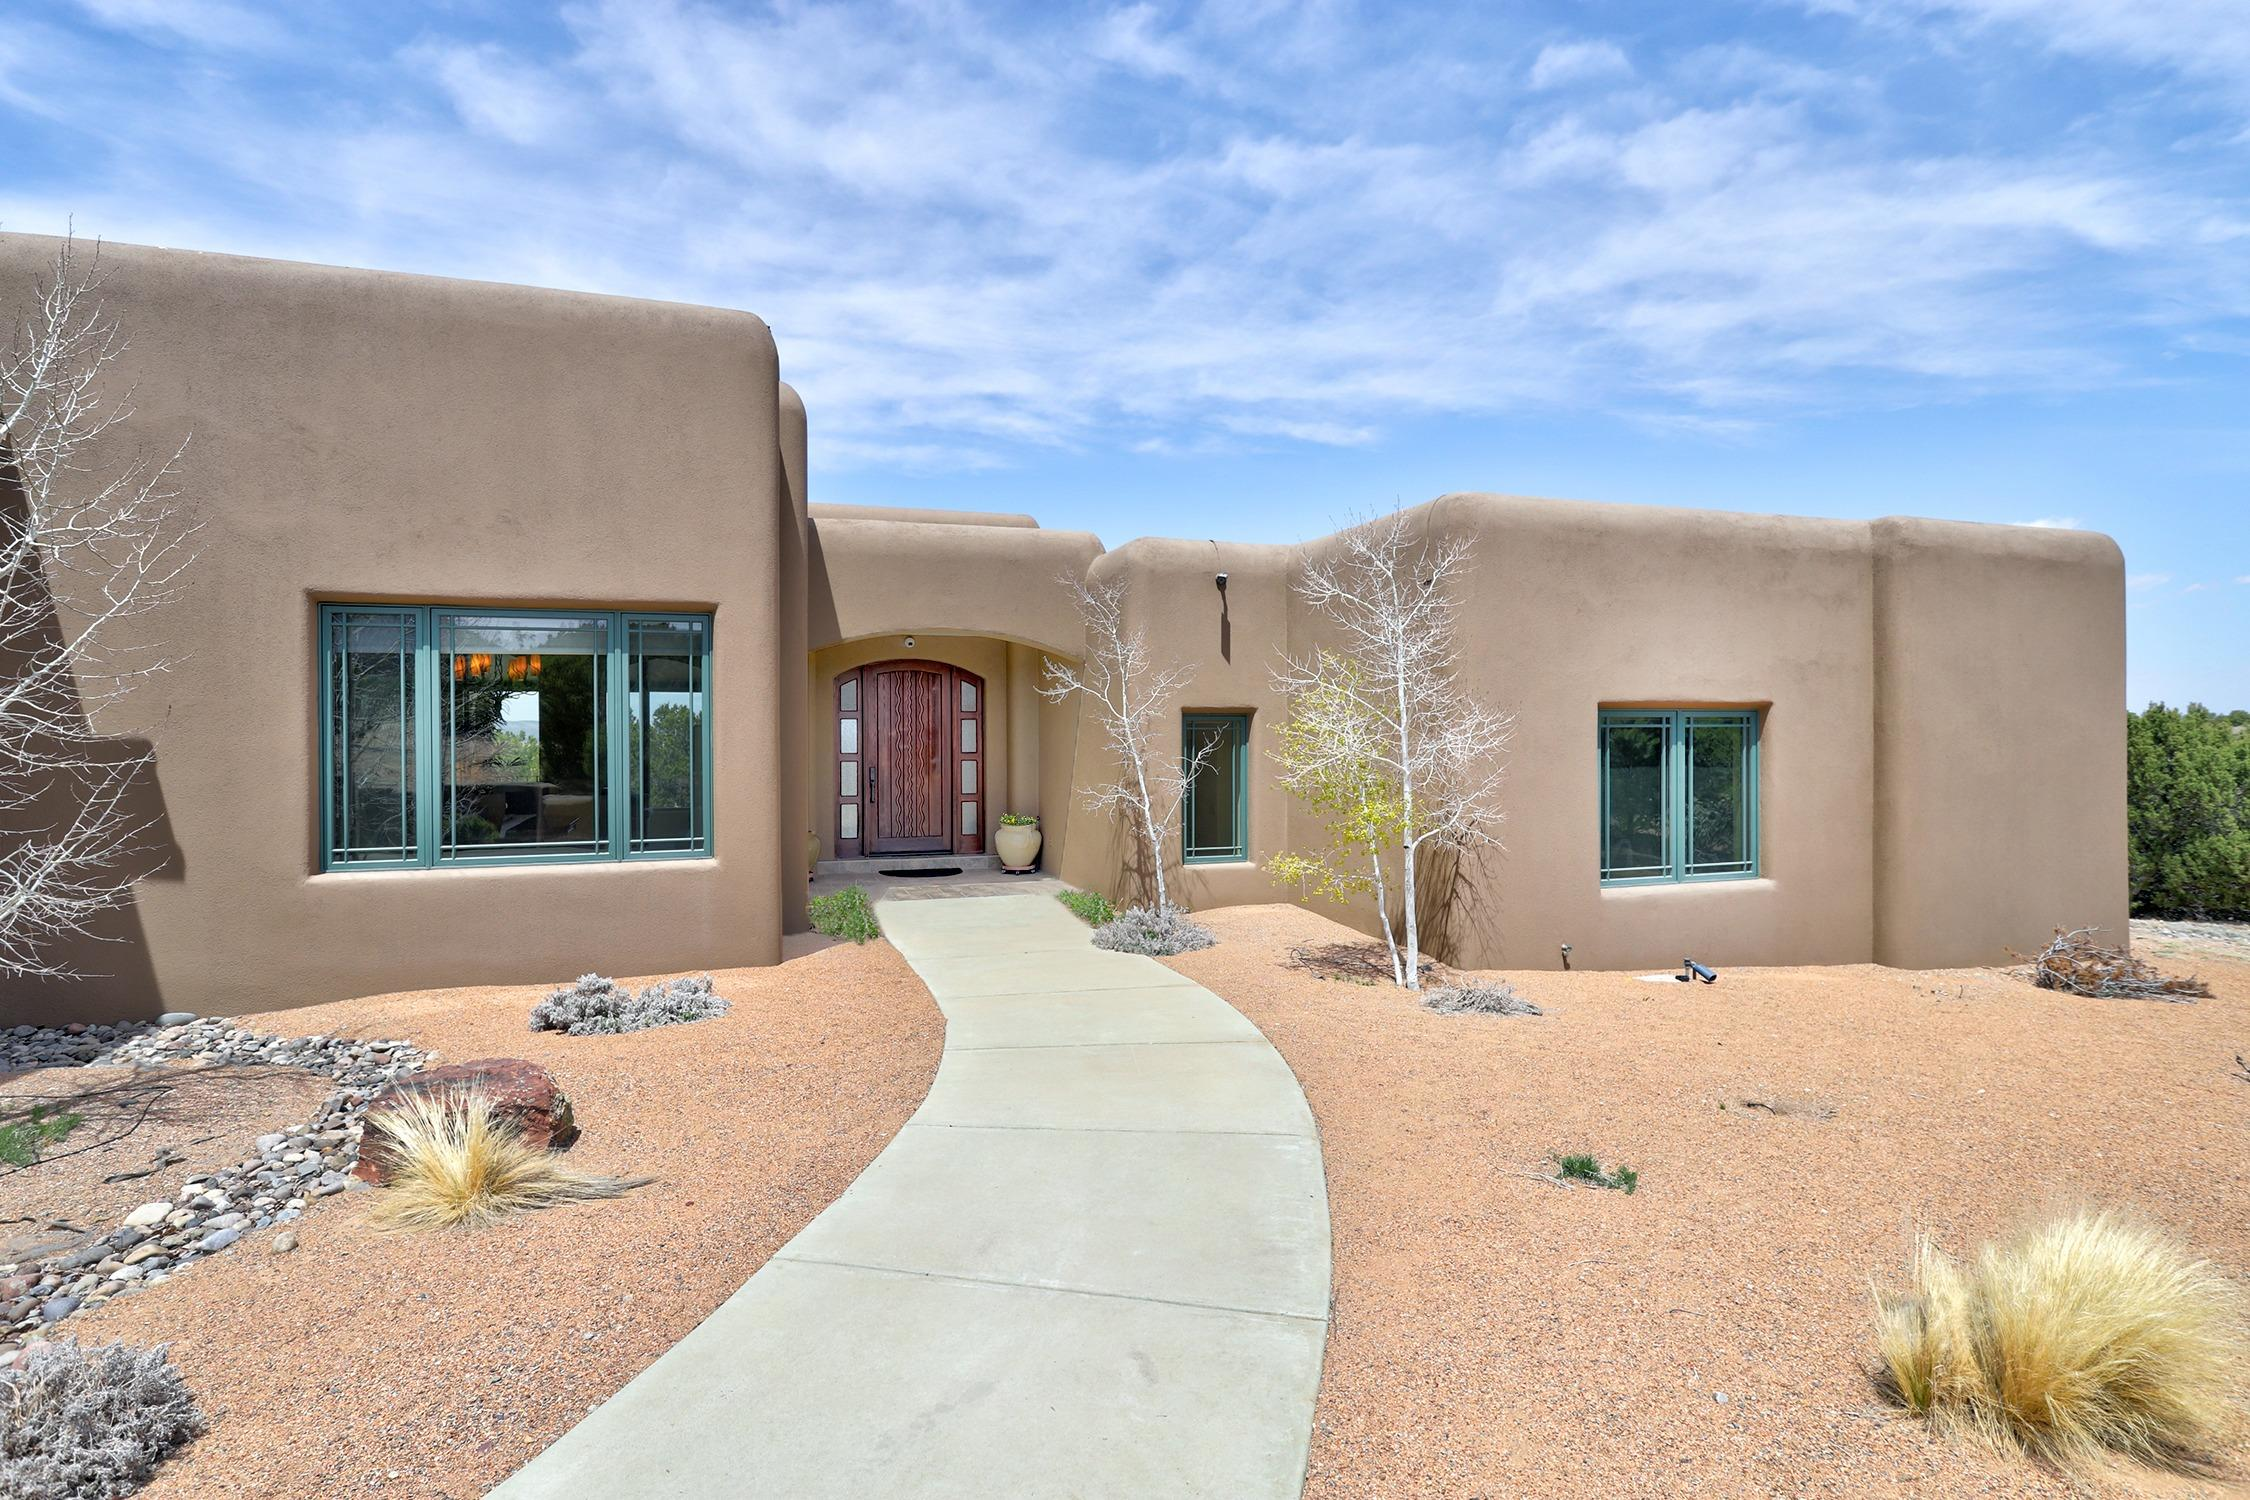 Spacious custom Crombie home on 3+ acres in the desirable Sandia Park neighborhood of San Pedro Overlook. Luxury amenities from start to finish! Modern kitchen with Kitchenaid Superba appliances, 6 burner gas stove and wooden hood, double ovens, bill paying center with remote computer, Halbert cabinets, granite counter tops and large pantry. Formal dining room with gas fireplace, hanging ceiling and indirect lighting. Gracious master with ensuite includes a soaking tub with surrounding views of the Sandia mountains. Pella architect series windows and electric Hunter Douglas window coverings. Theatre room with 92'' Stewart Filmscreen and Runco 720P projector. 7.1 marantz Surround Sound, Theater seating & indirect lighting.